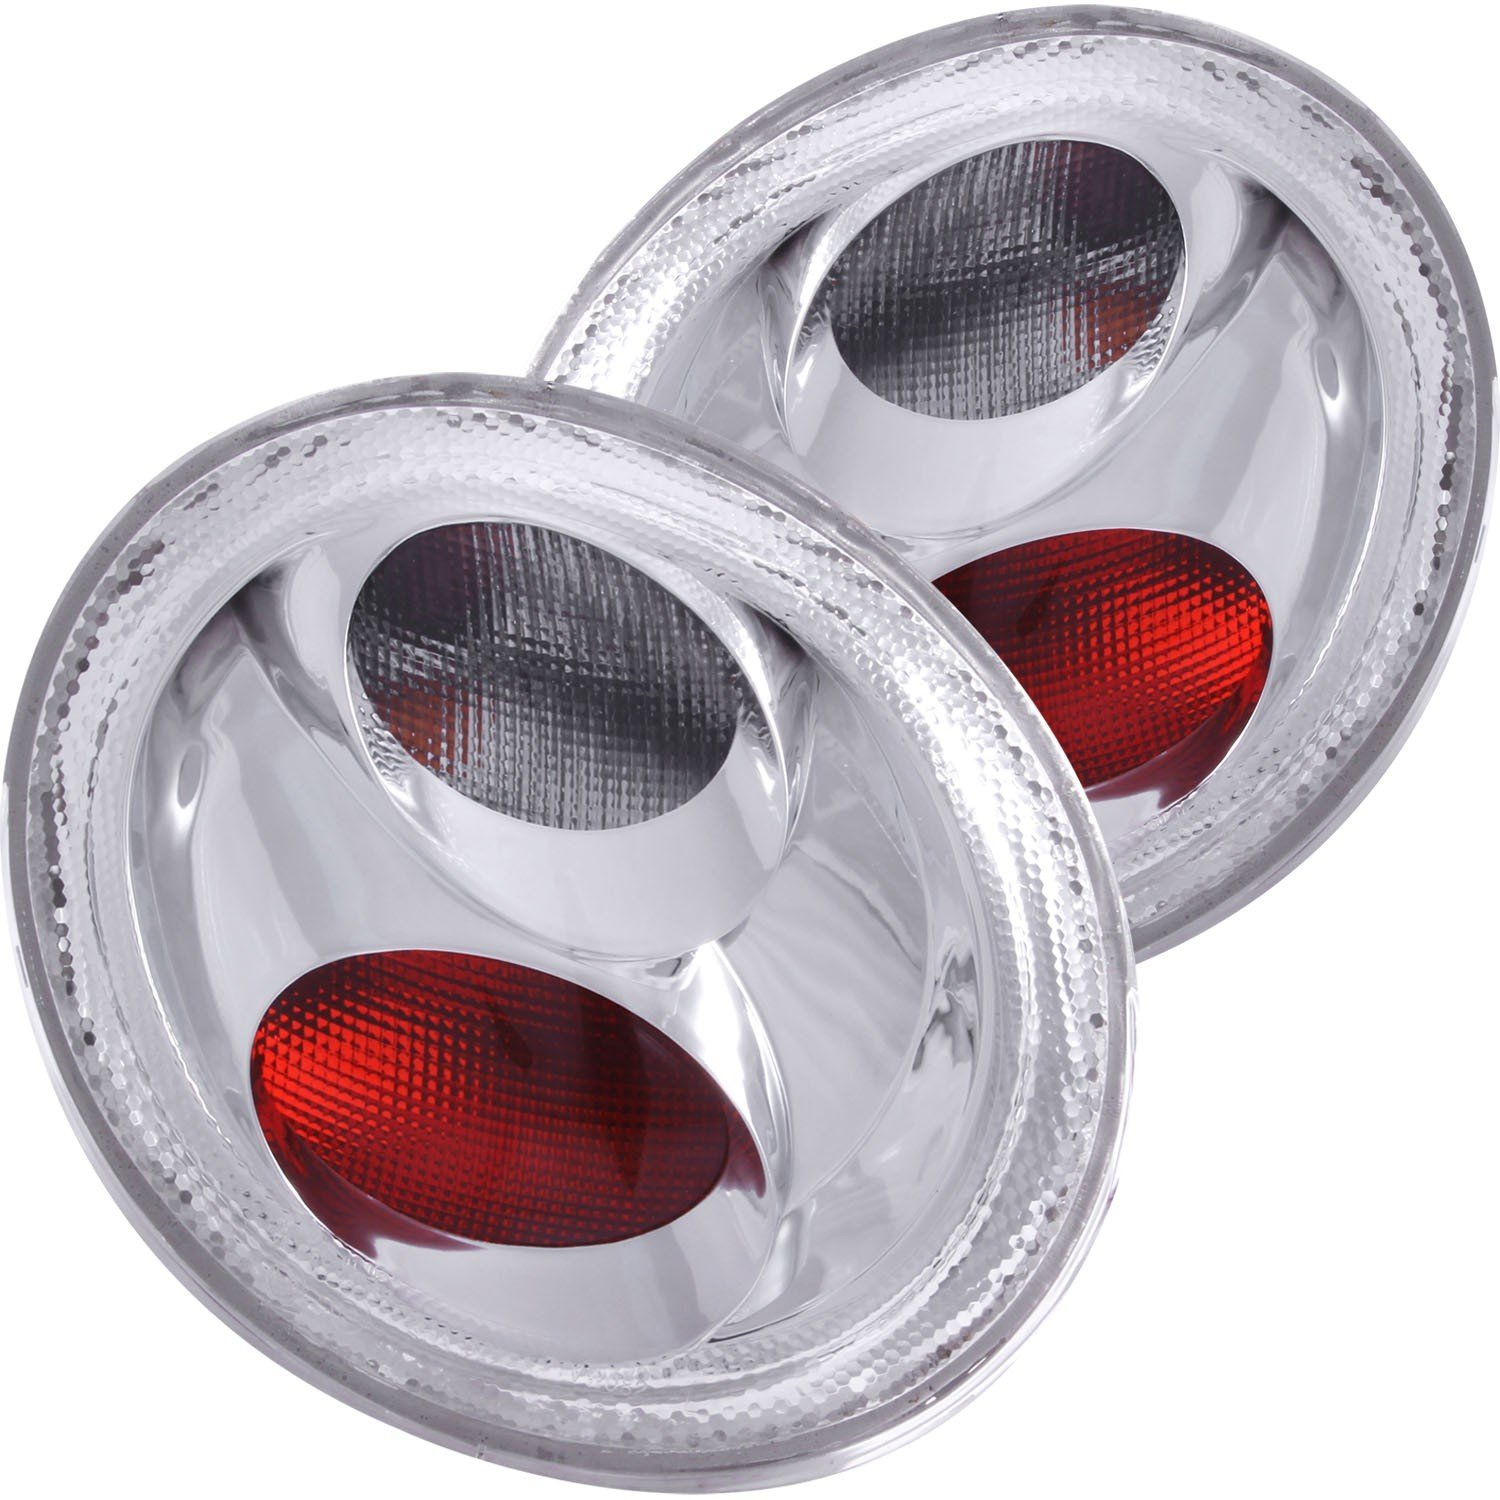 98 05 Volkswagen Beetle Tail Lights Left Right Pair W Clear Lens Chevy Truck Led Chrome